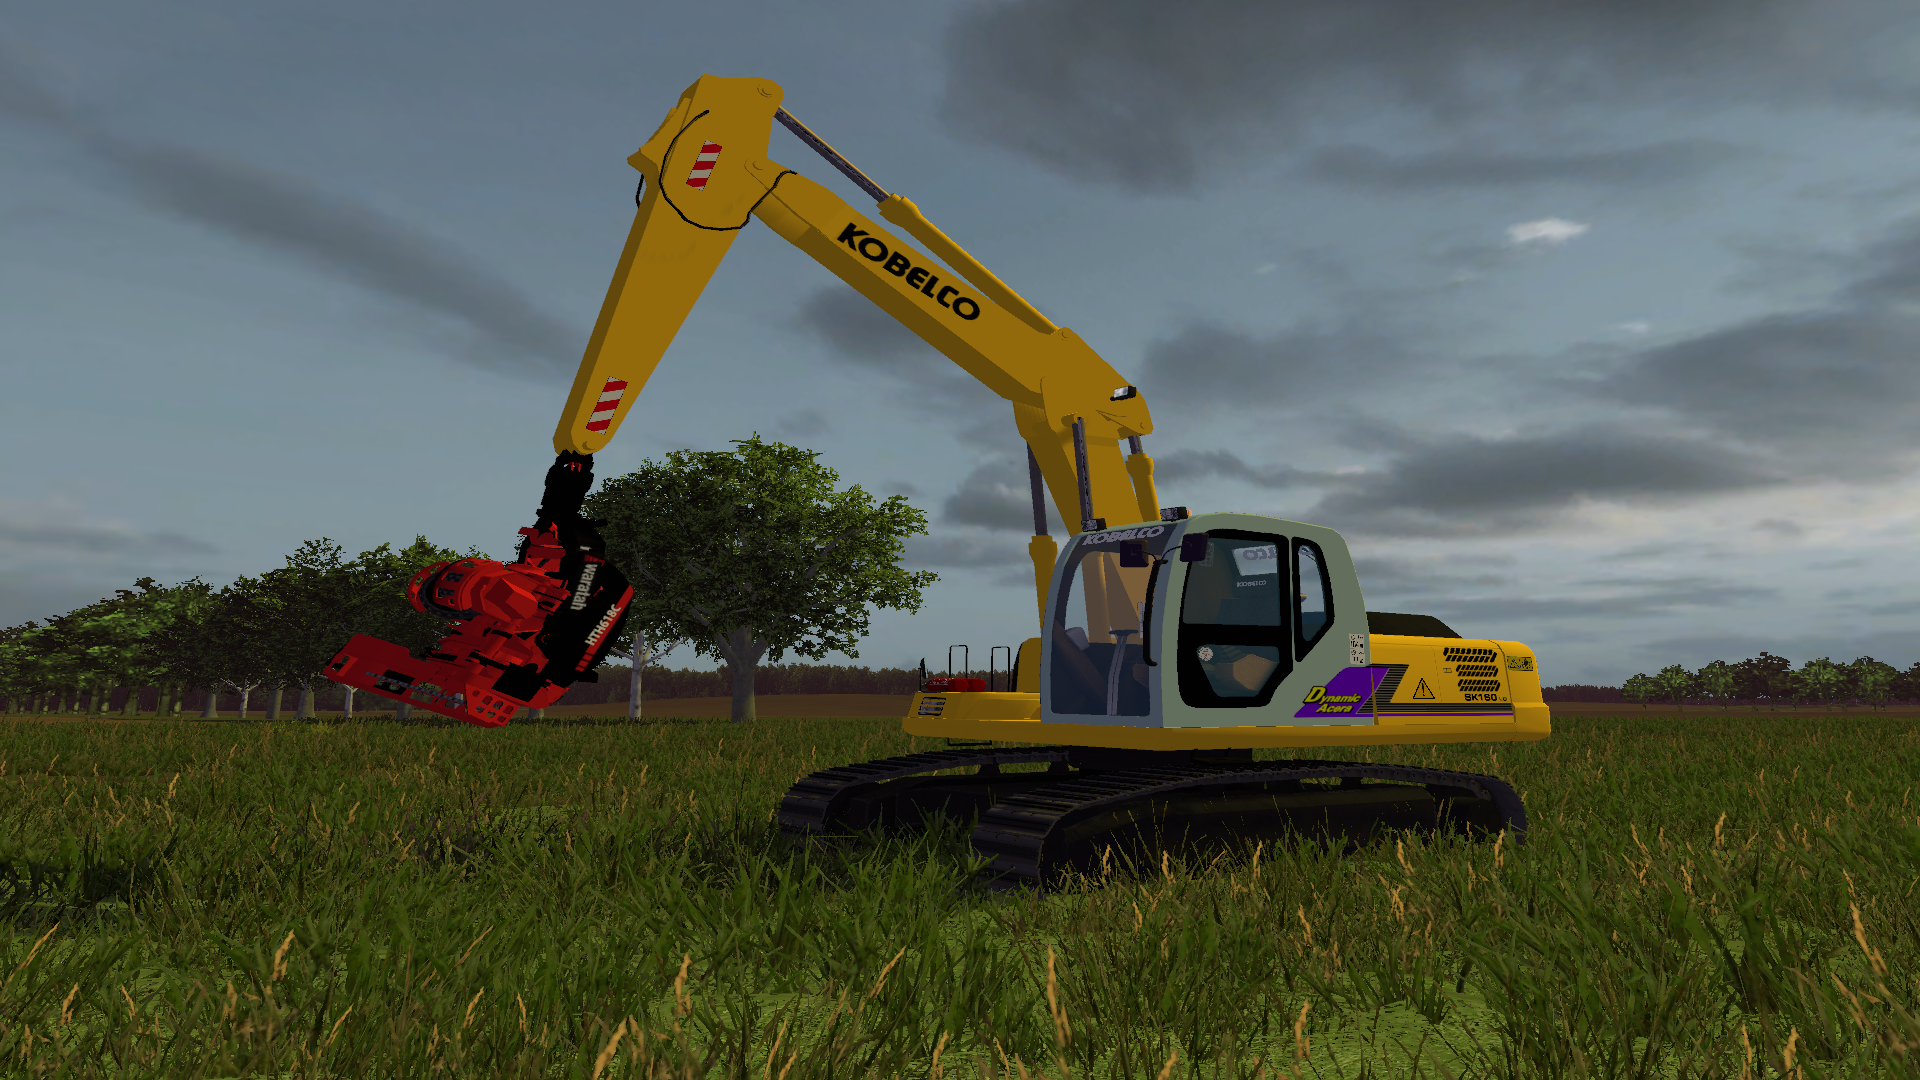 Kobelco SK160 - Farming simulator modification - FarmingMod com